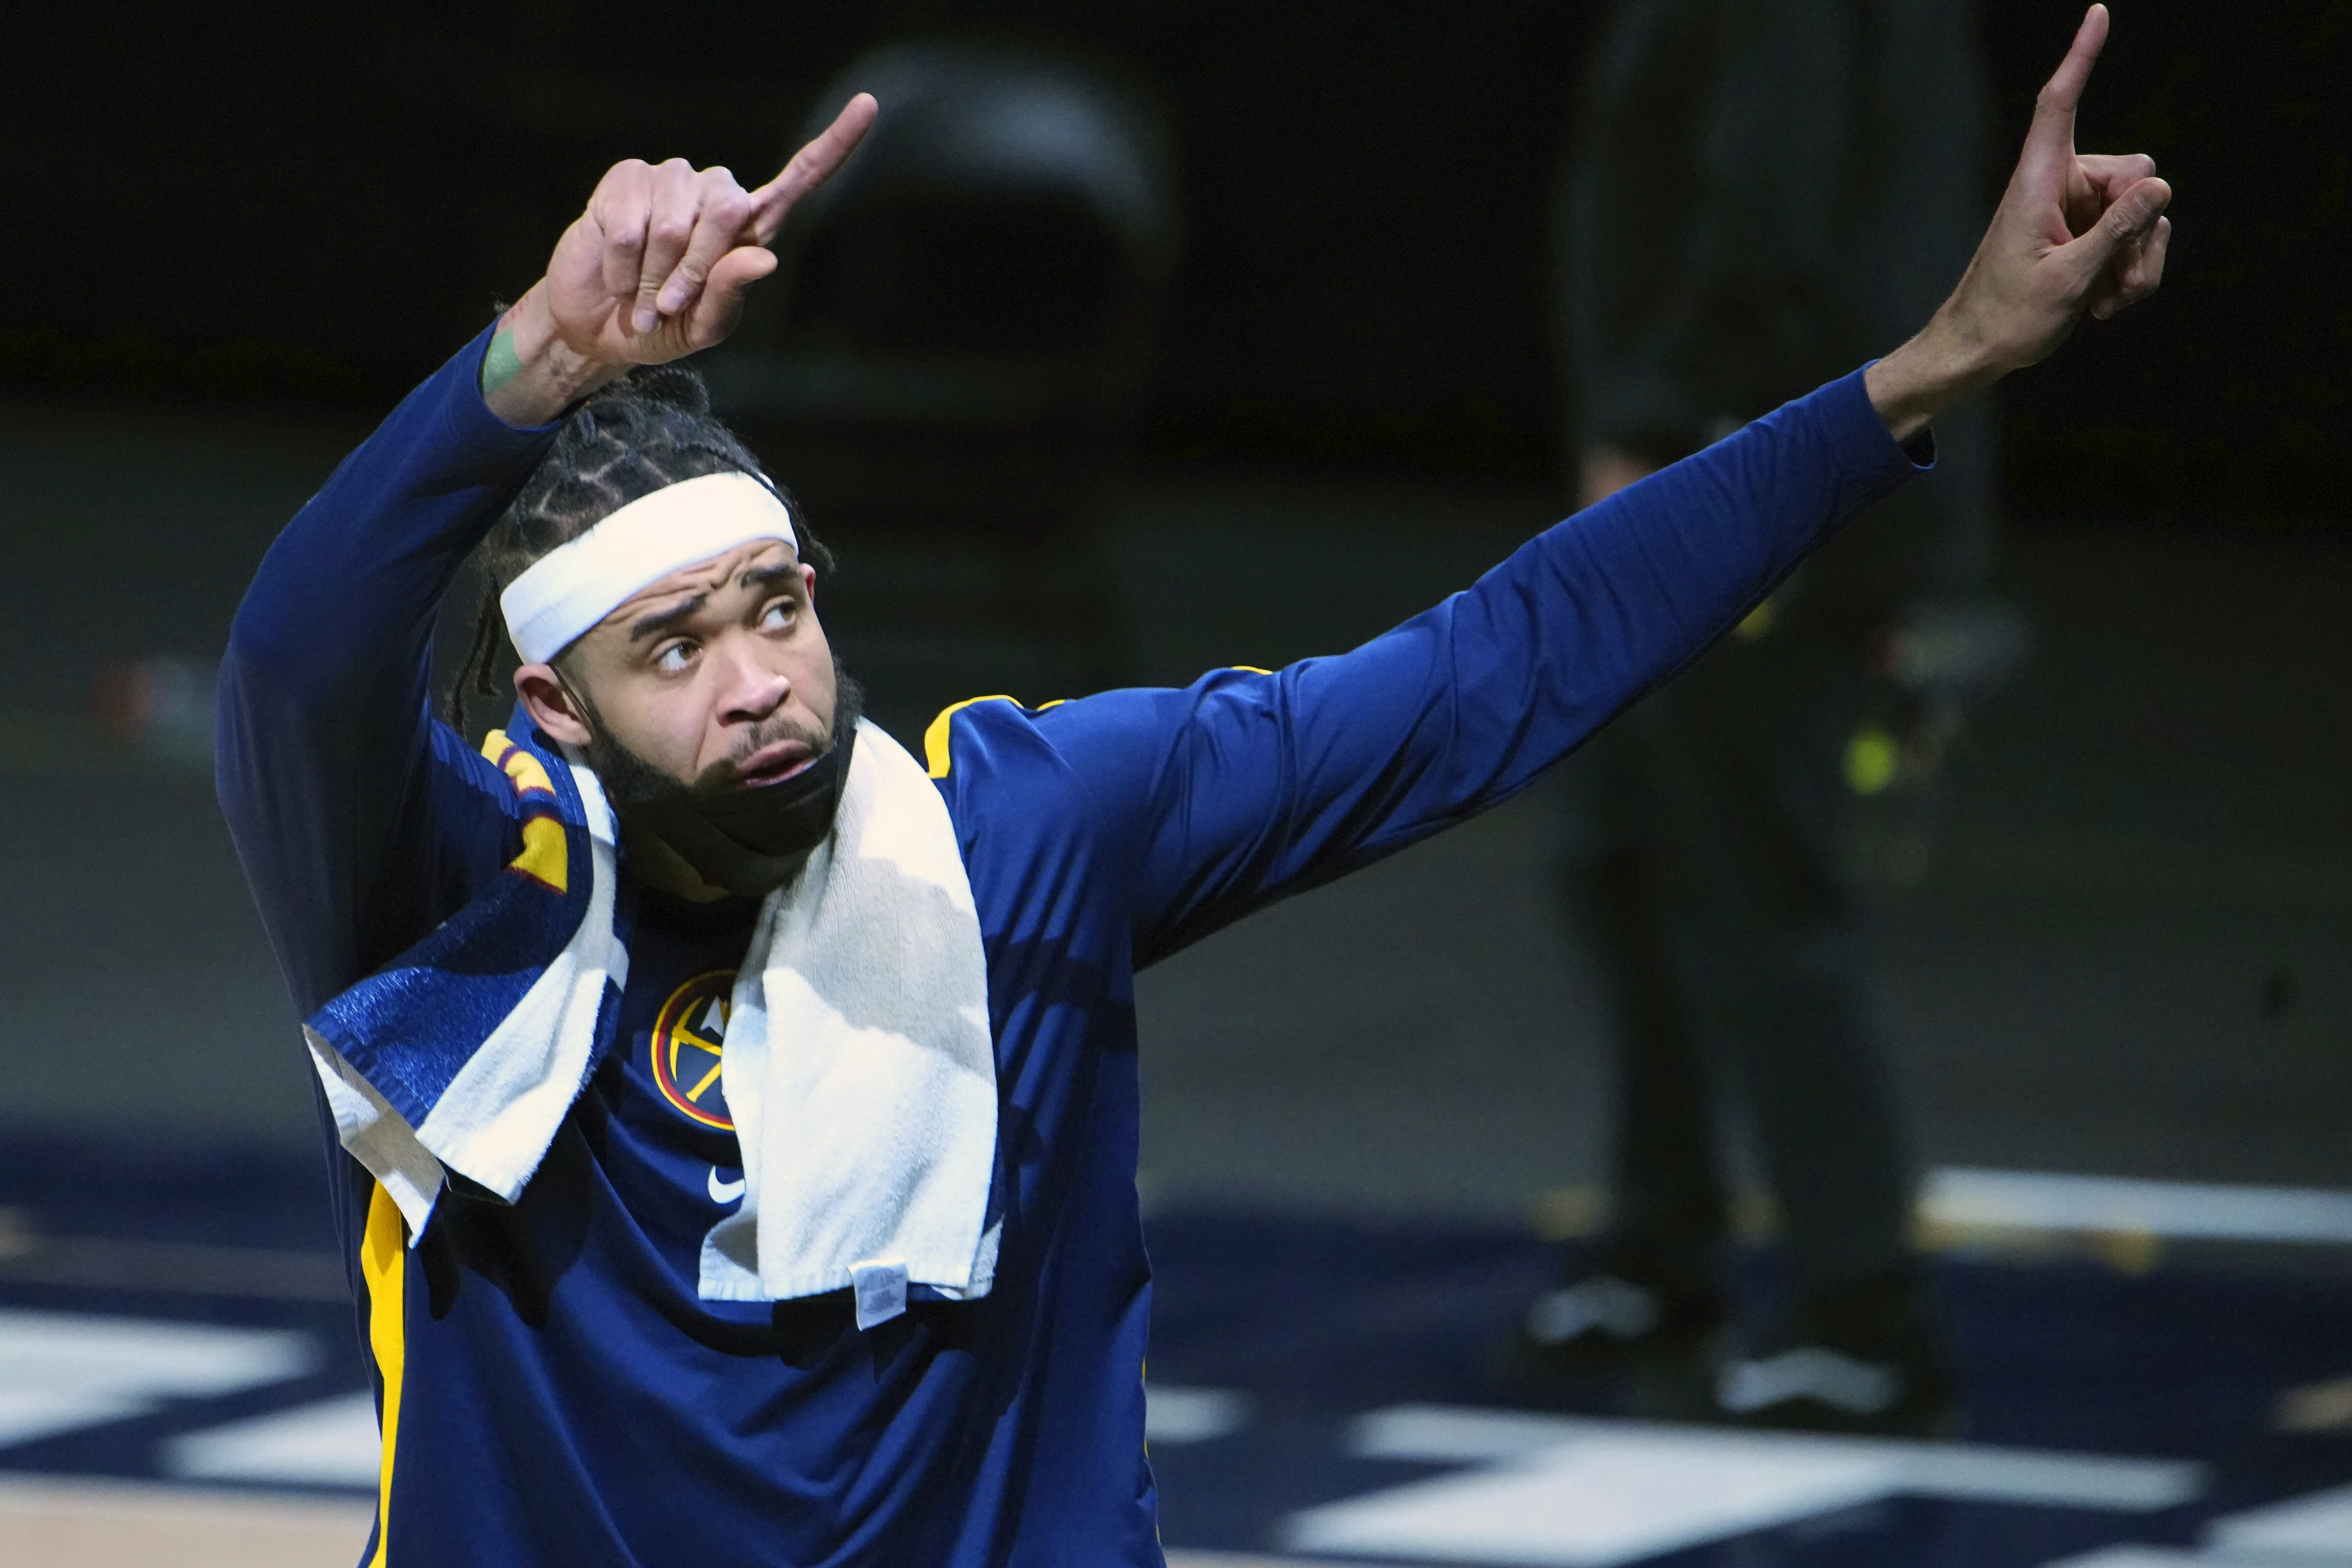 Denver Nuggets center JaVale McGee (34) celebrates a win against the San Antonio Spurs following an NBA basketball game Wednesday, April 7, 2021, in Denver. (AP Photo/Jack Dempsey)